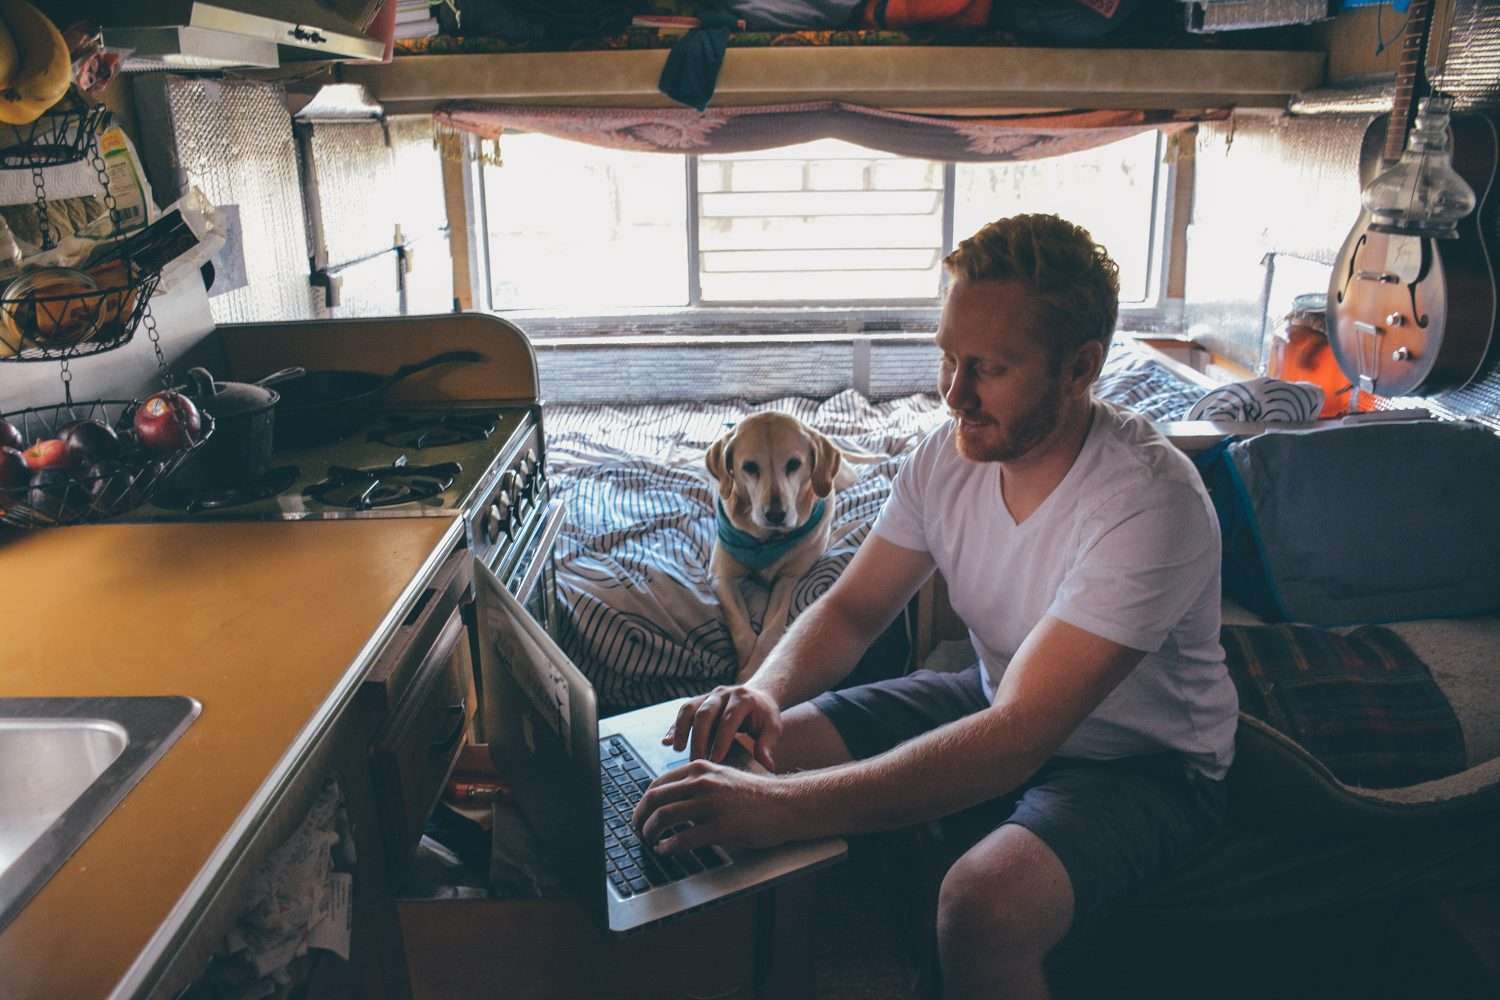 a man works on a laptop from his camper